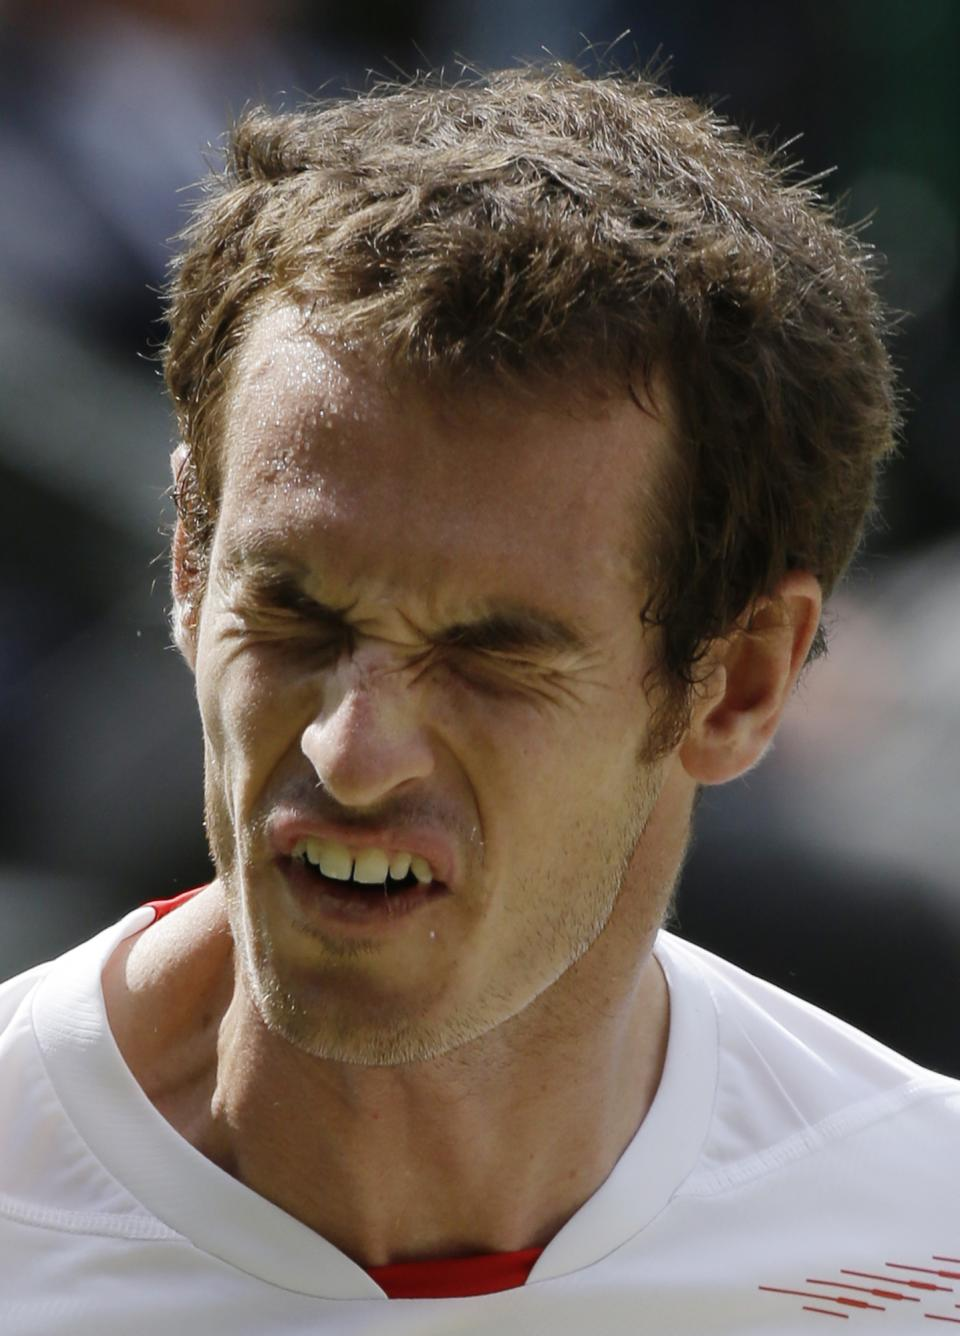 Andy Murray of Britain reacts during the men's singles final match against Roger Federer of Switzerland at the All England Lawn Tennis Championships at Wimbledon, England, Sunday, July 8, 2012. (AP Photo/Anja Niedringhaus)